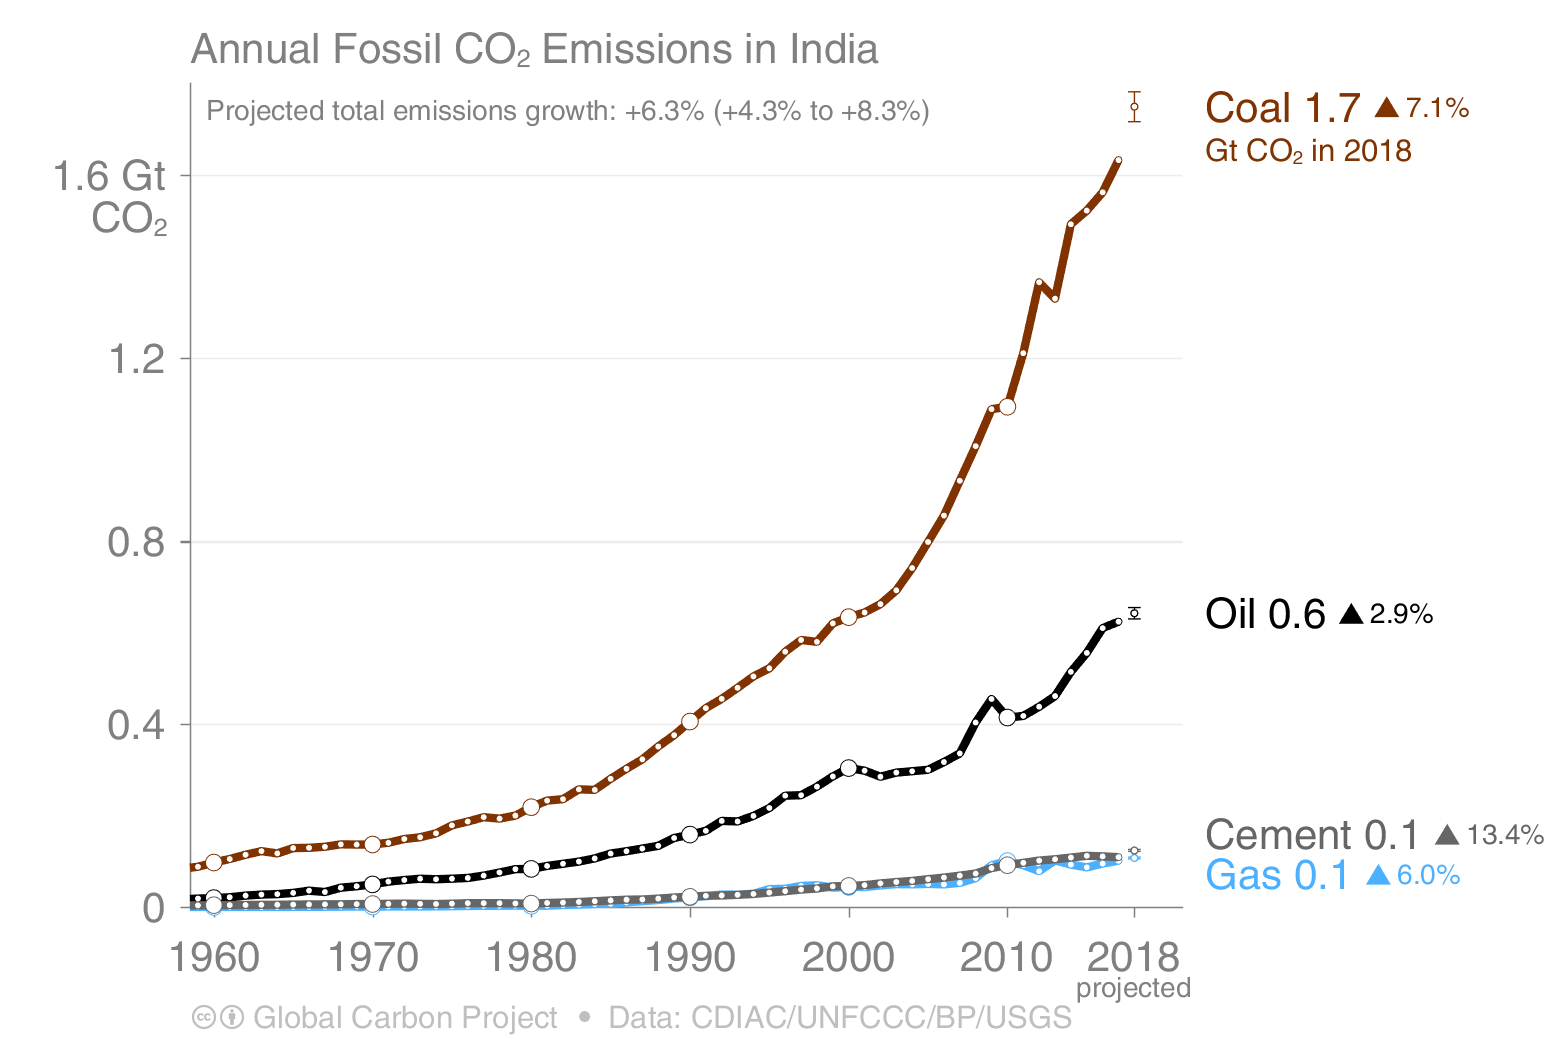 Annual fossil CO2 emissions in India 1960-2018 for coal, oil, gas and cement